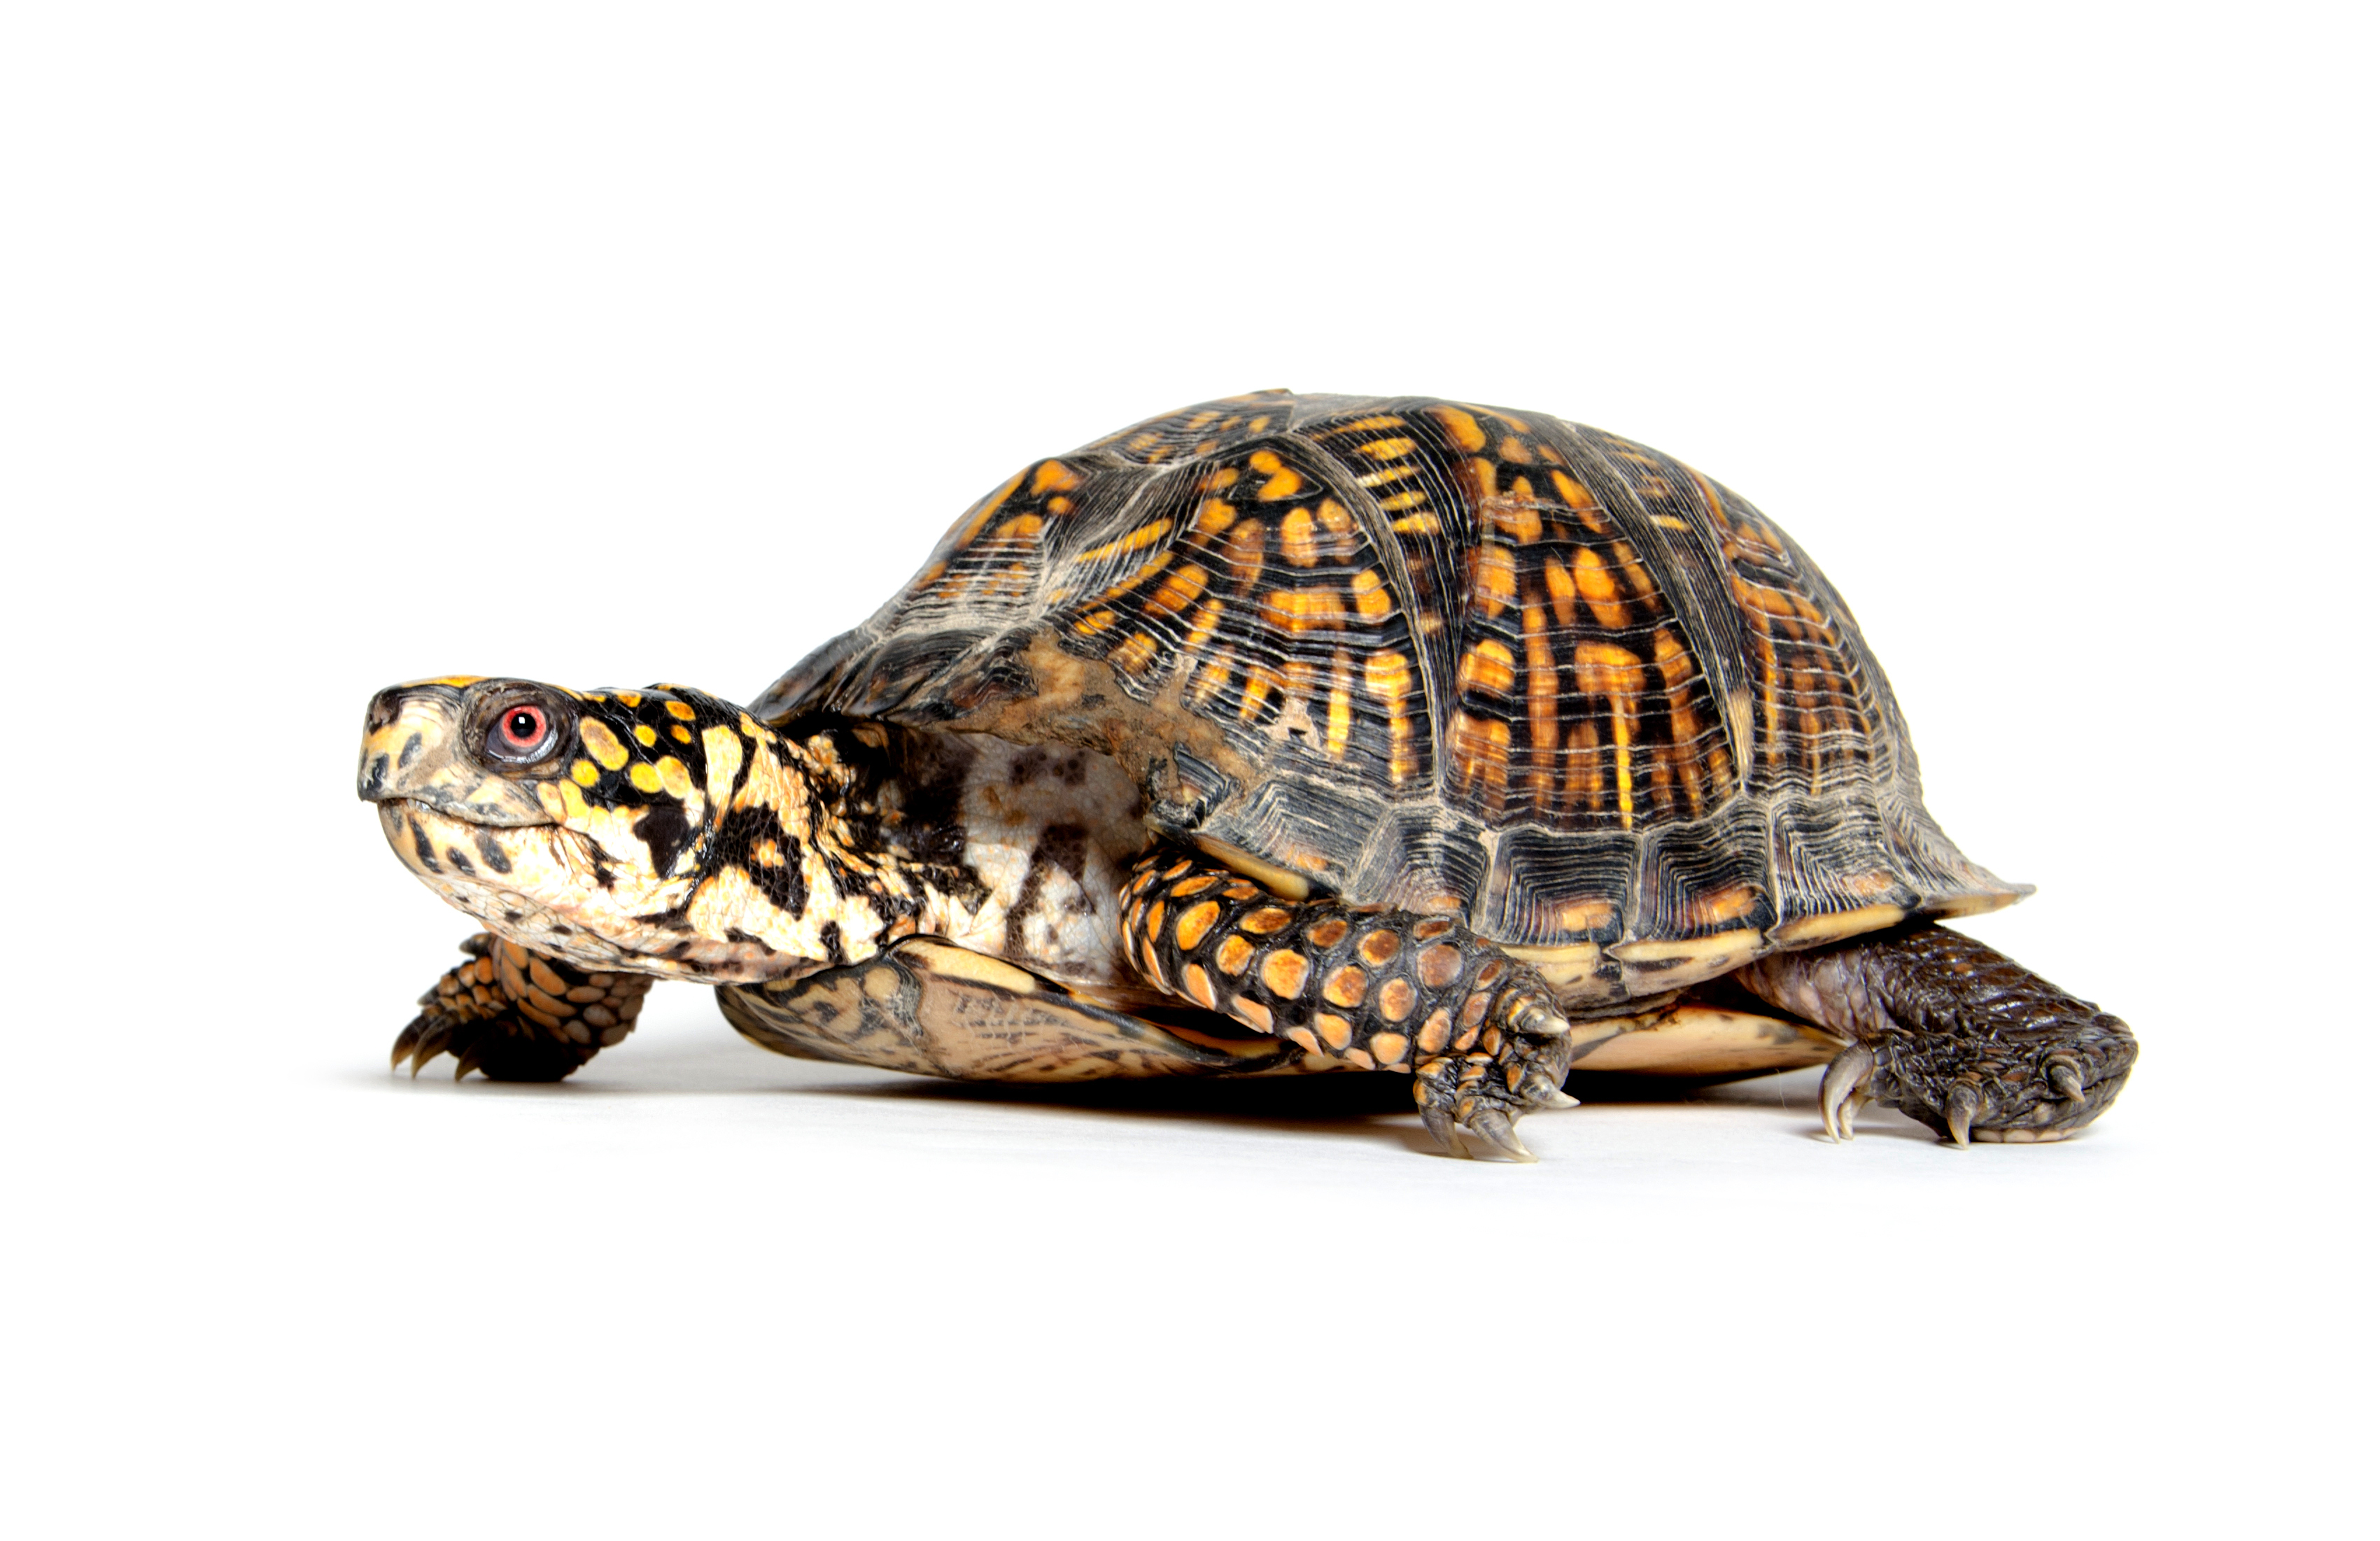 Box turtle on white